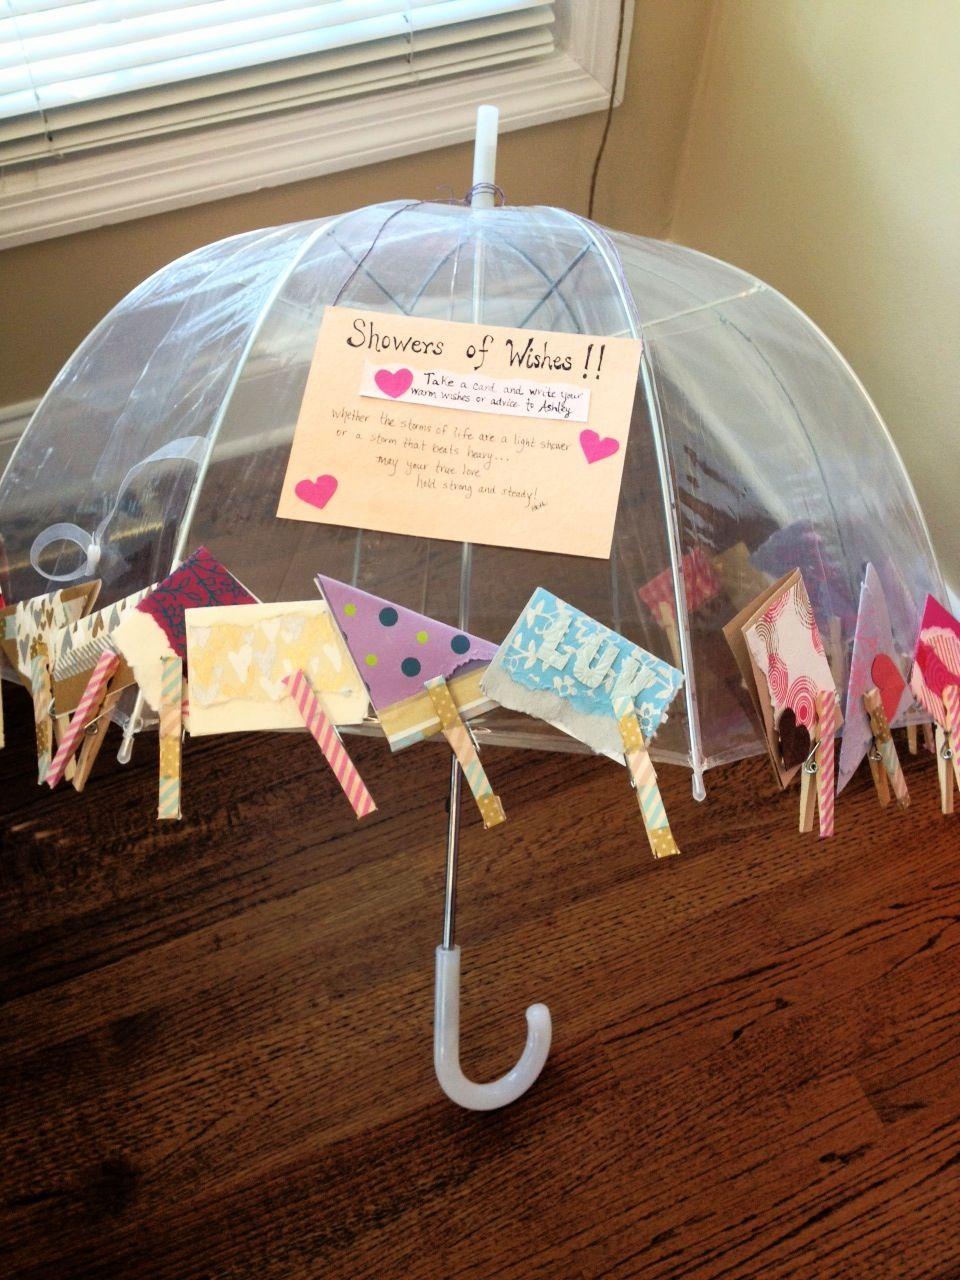 shower of wishes umbrella at the bridal shower i handmade cards to have the guest give the bride well wishes or that small tokens of advice